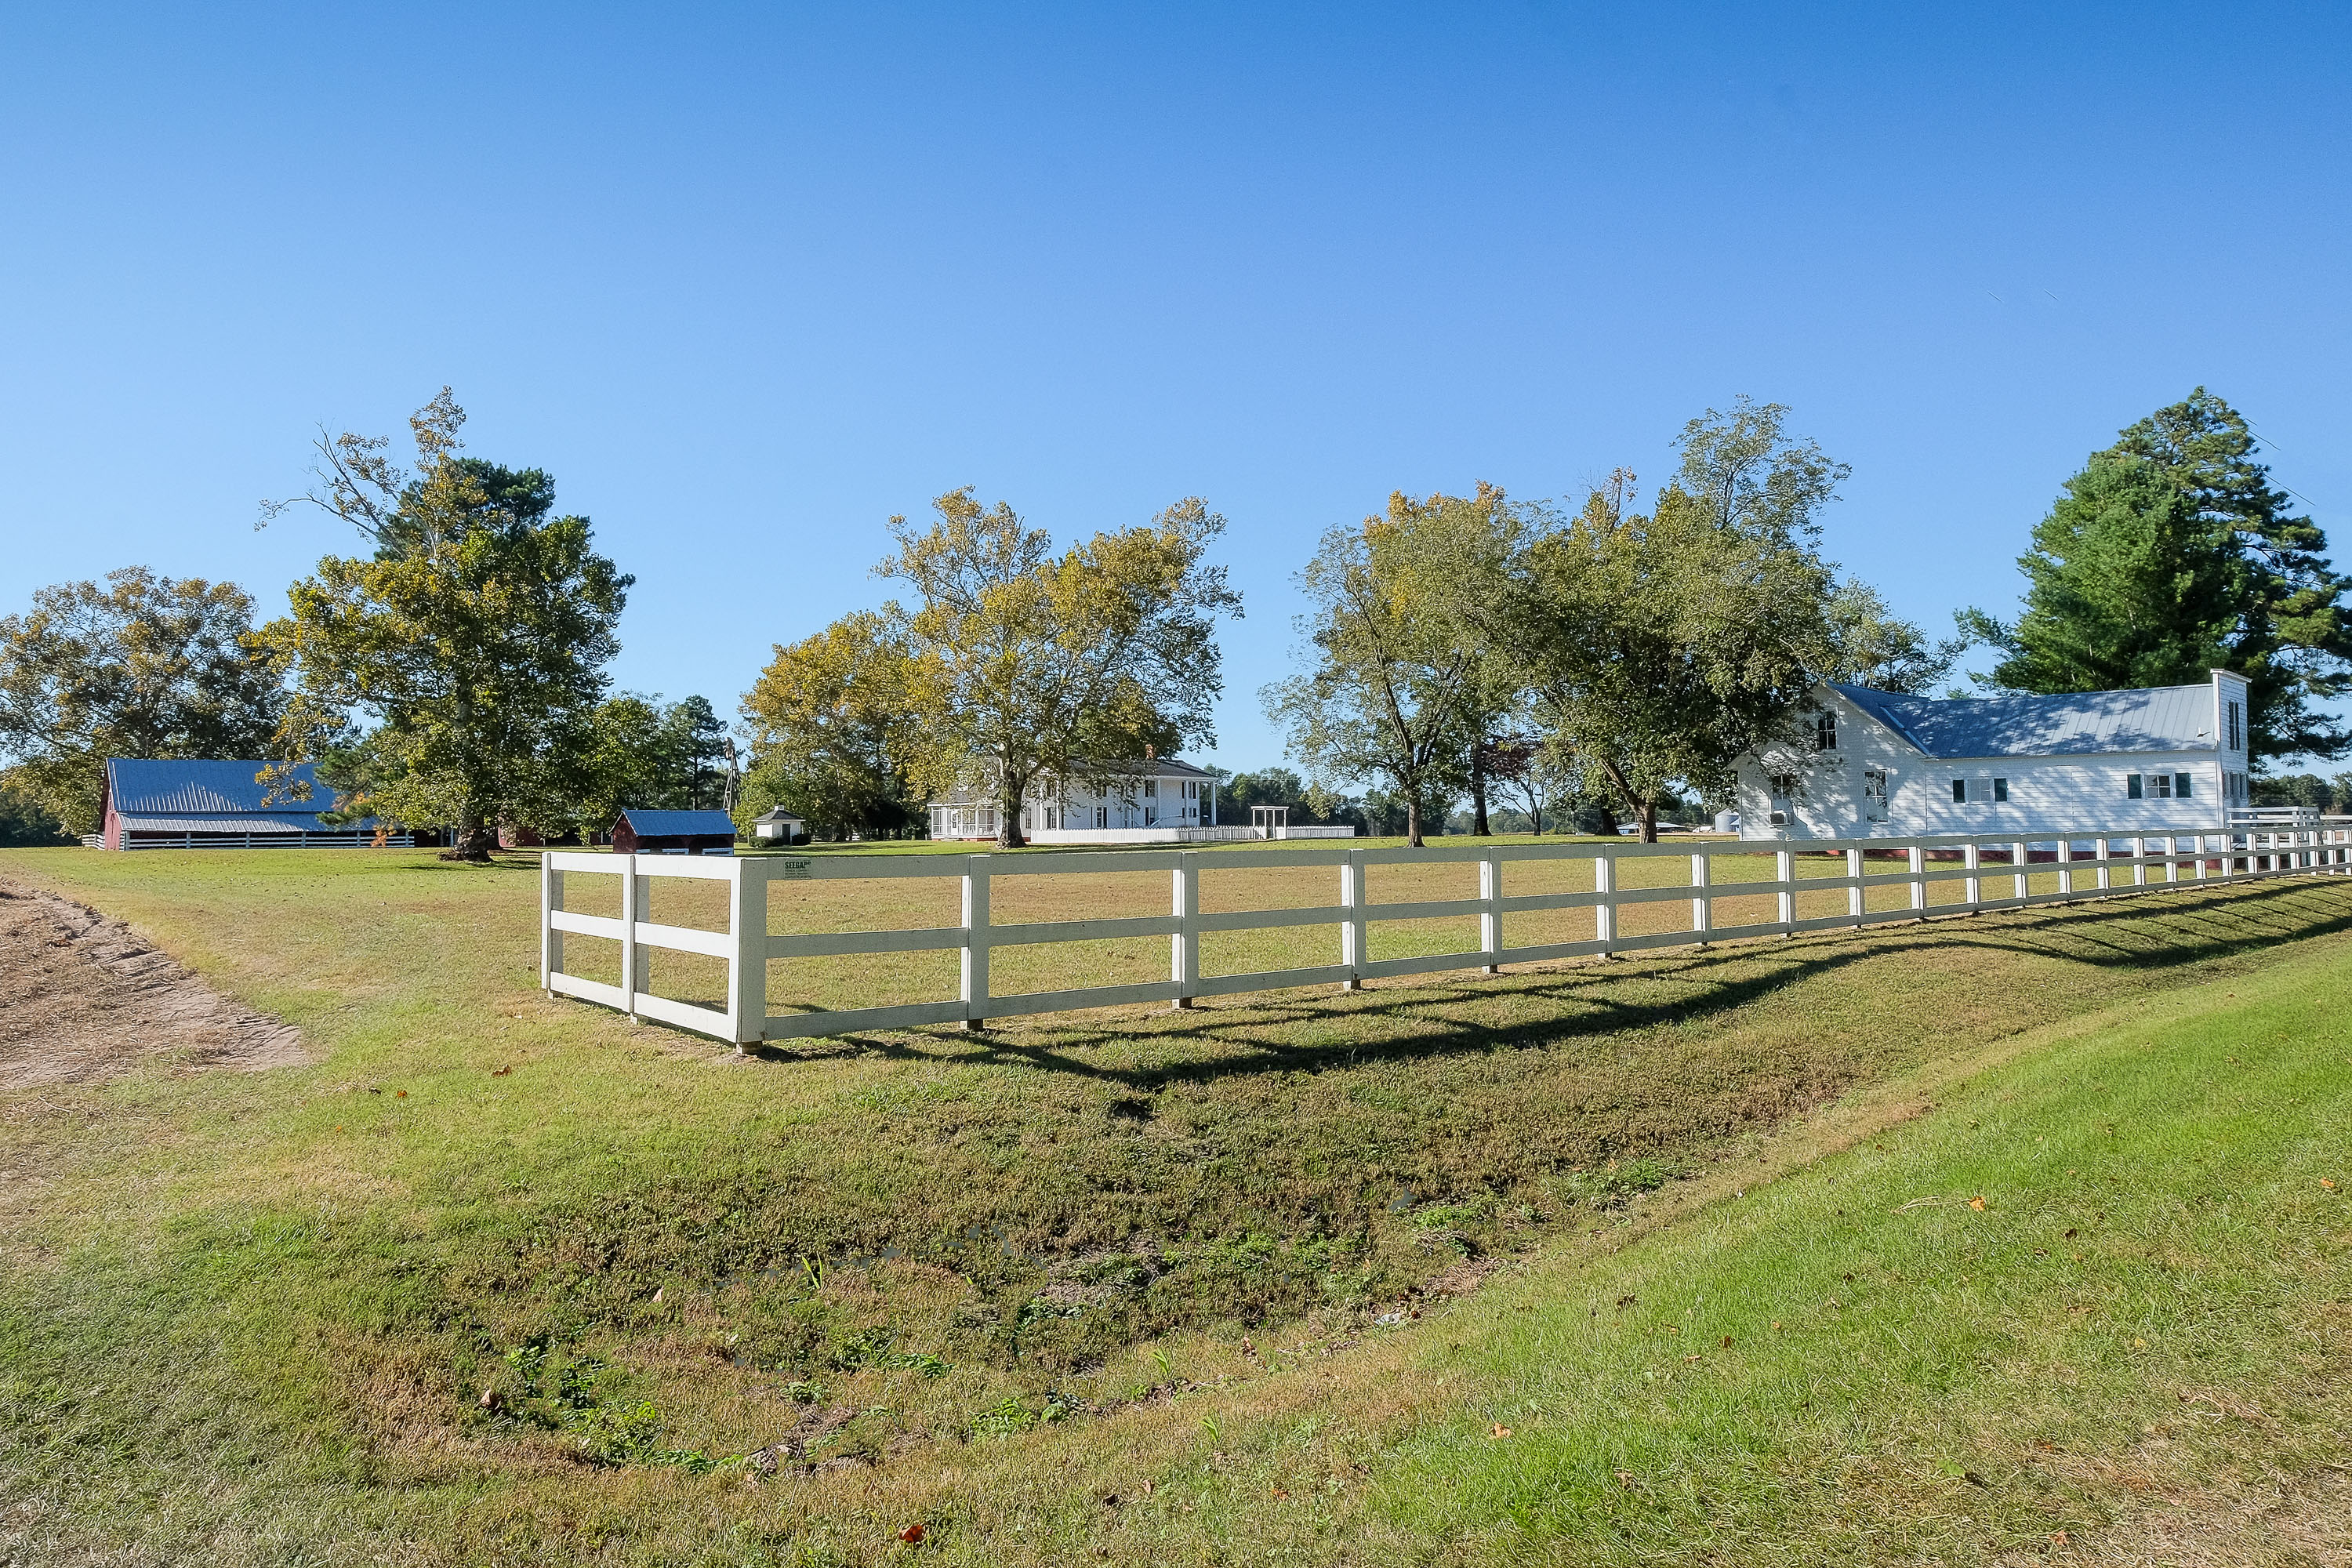 Moradia para Venda às Gracious, Farm Property-Endless Possibilities 321 Riverby Farm Road Edenton, Carolina Do Norte, 27932 Estados Unidos